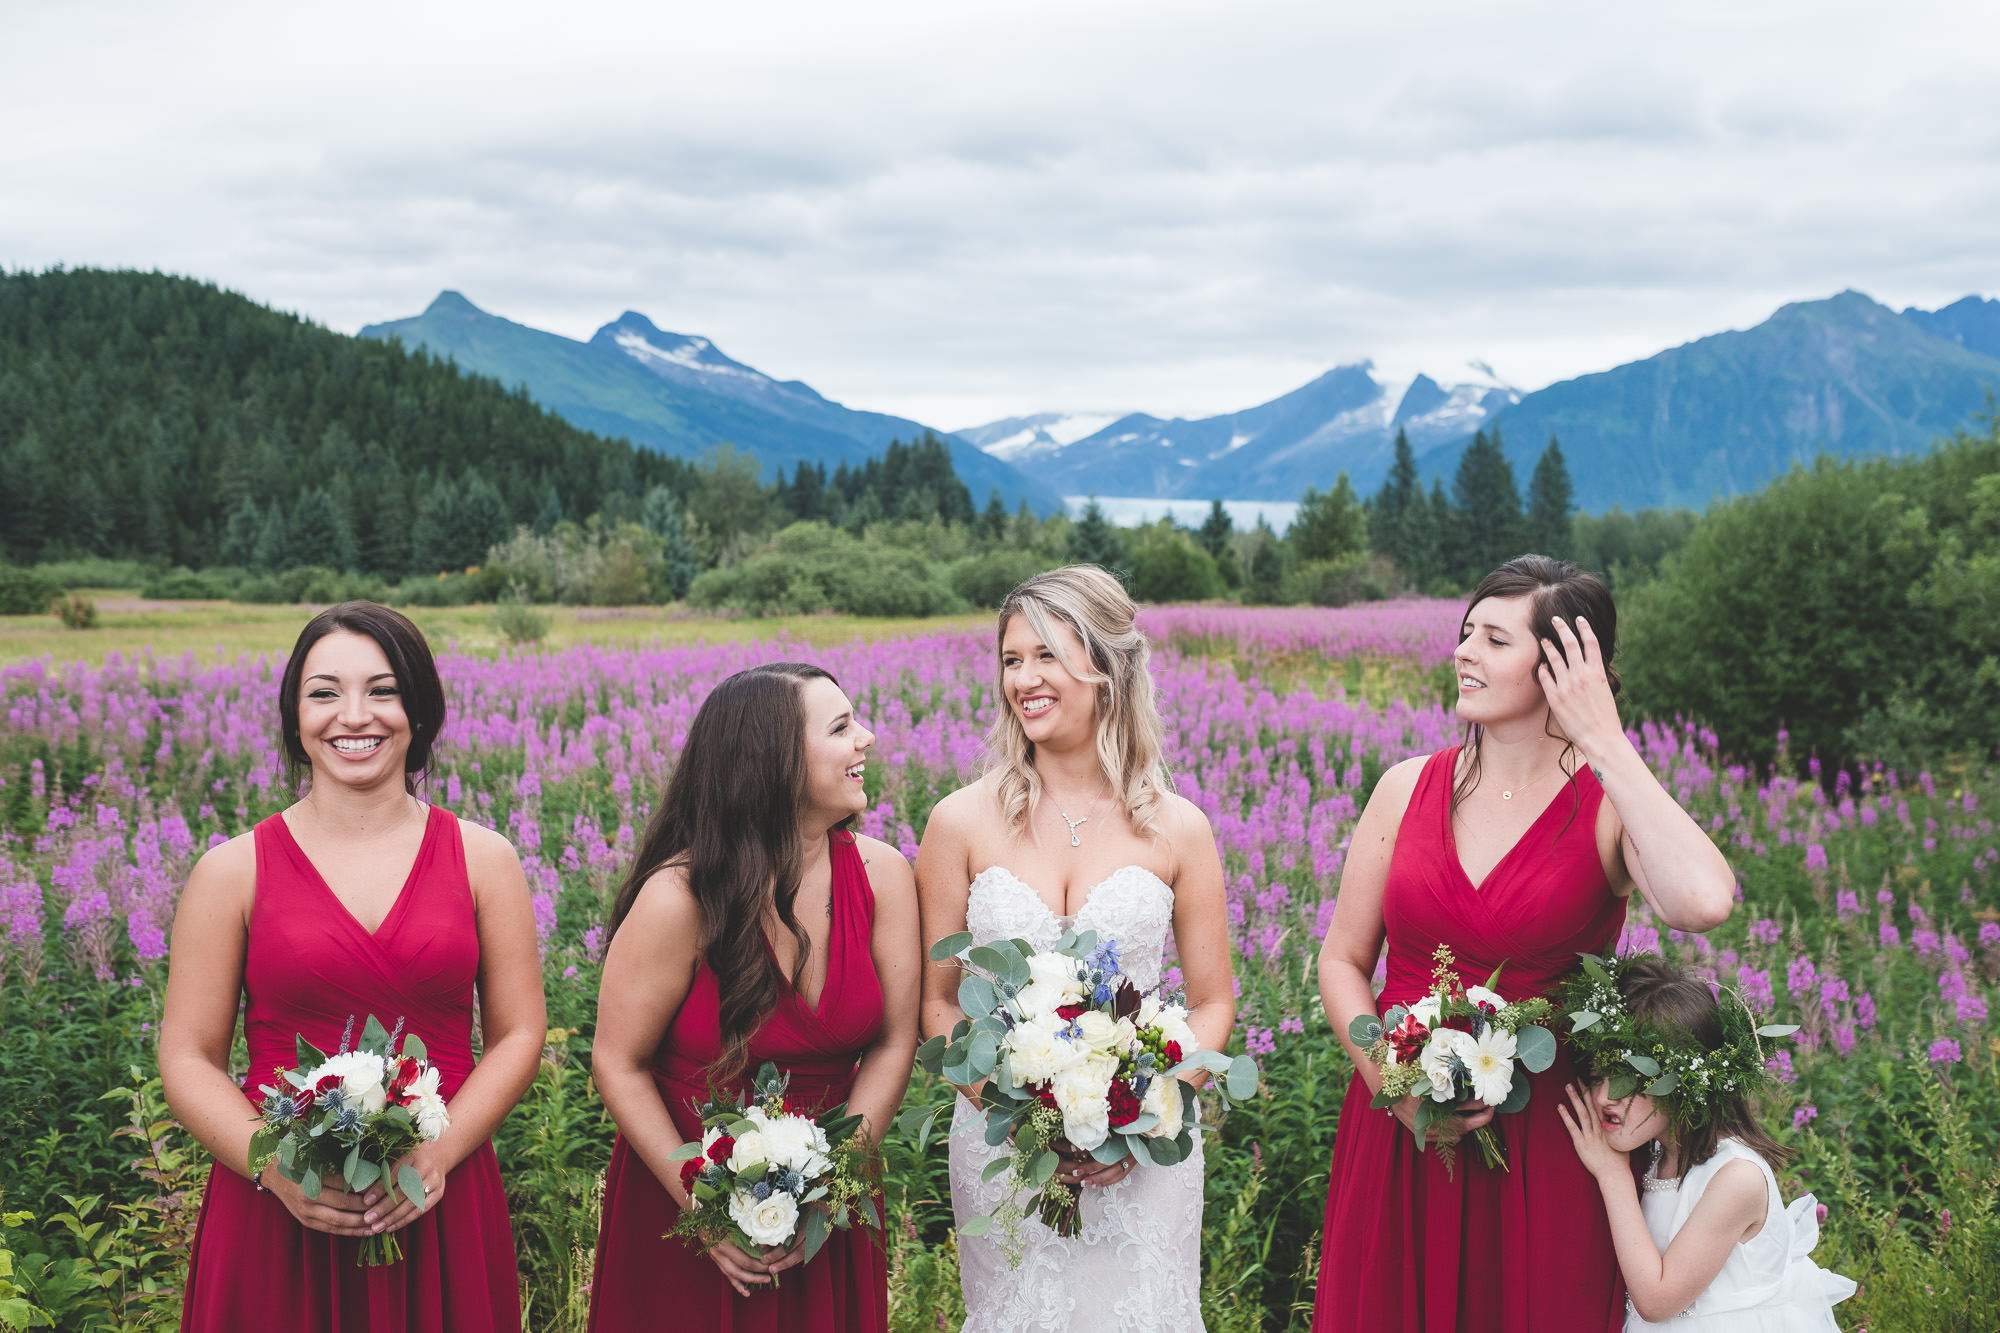 bridesmaids-laughing-together